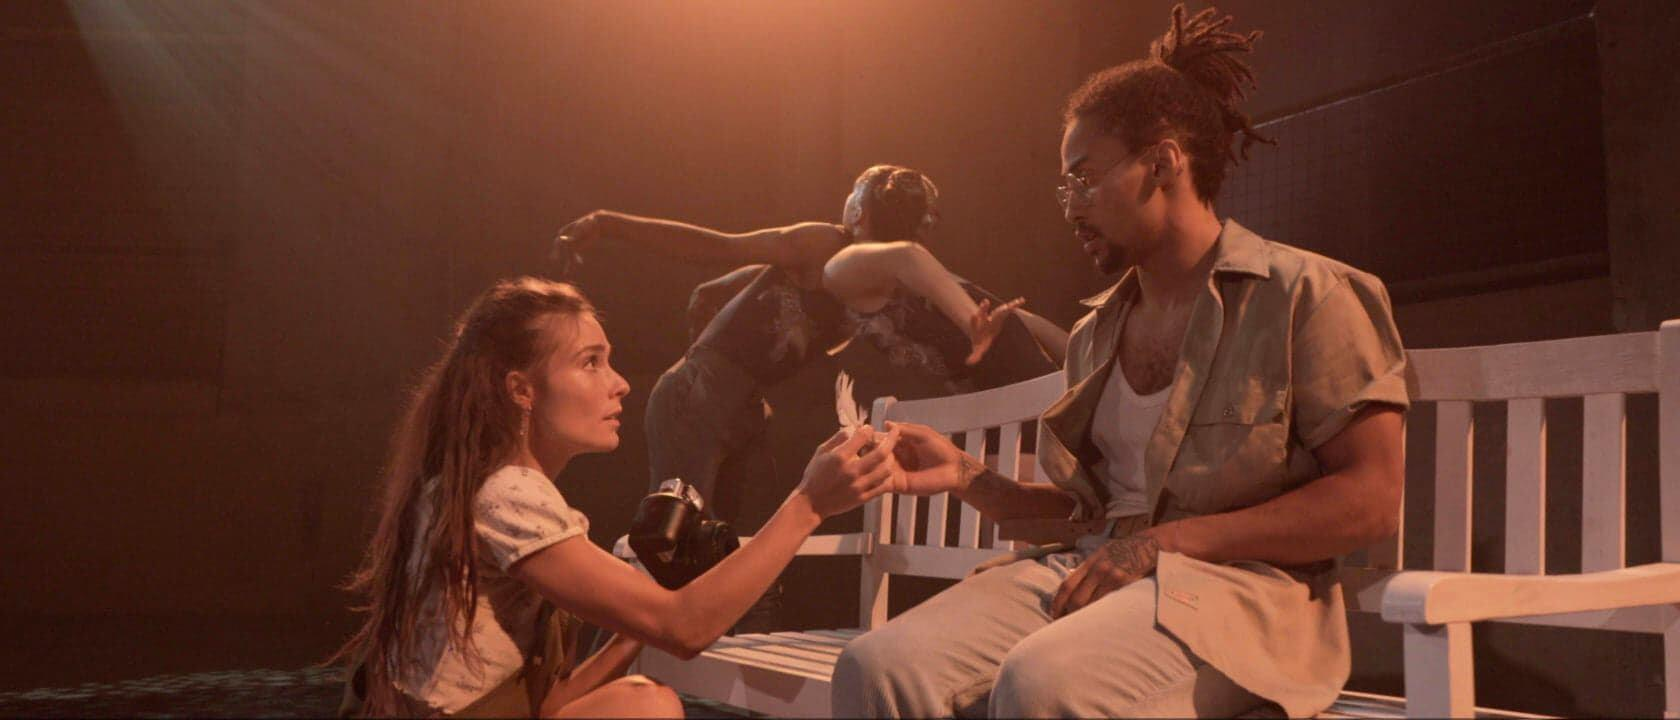 Photograph from Wait For Me - lighting design by Matthew Carnazza